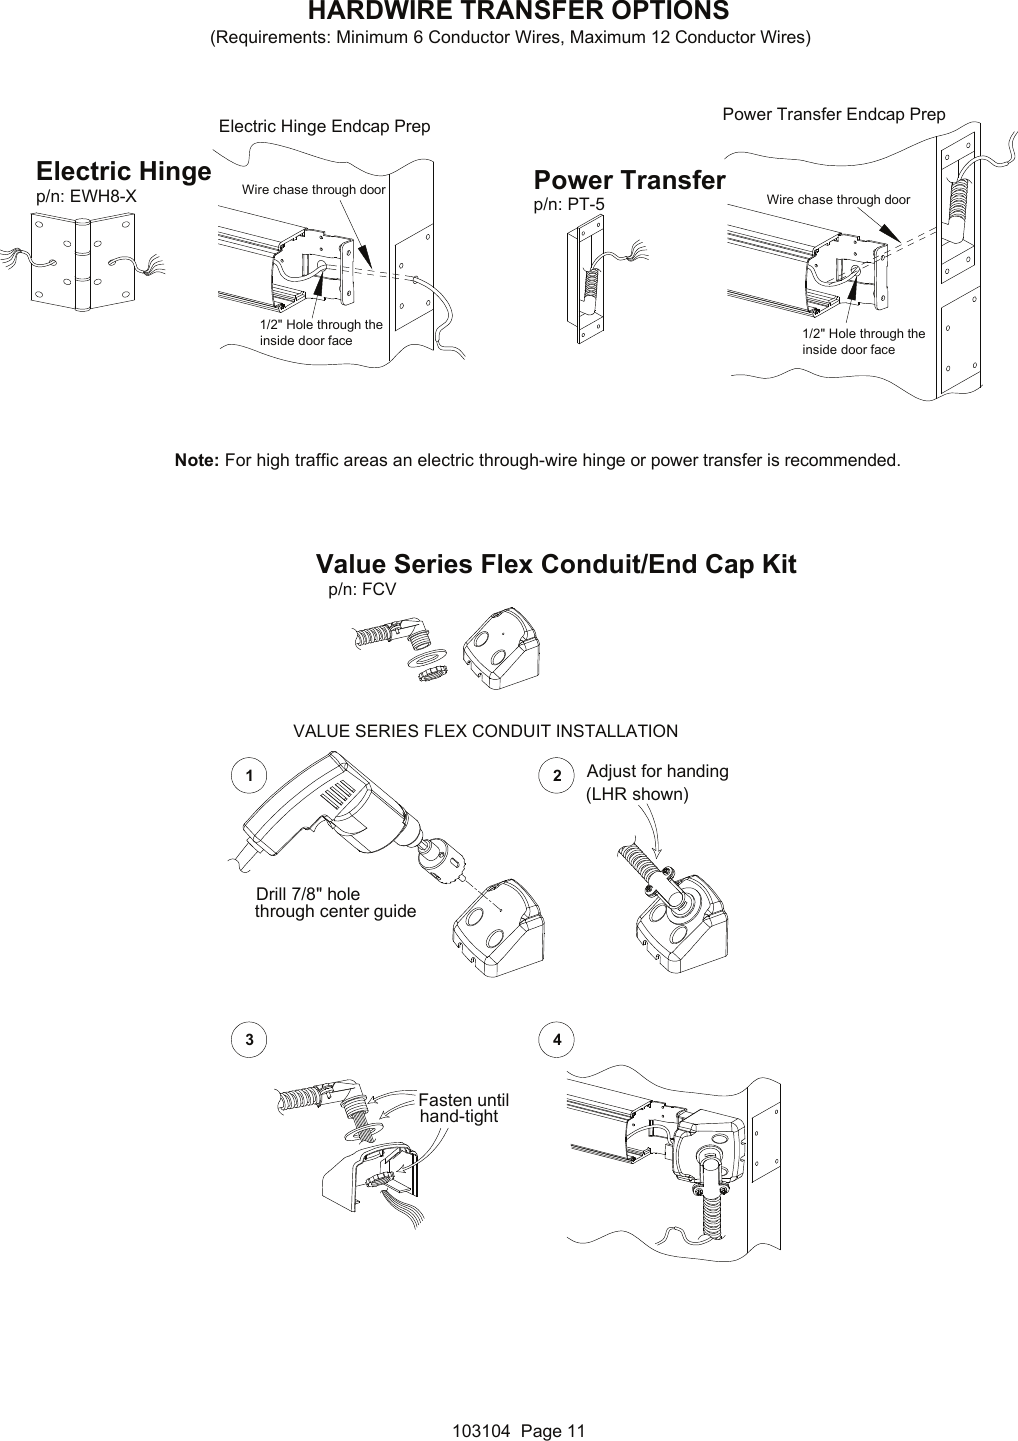 Detex Installation Instructions For Architectural Value Series